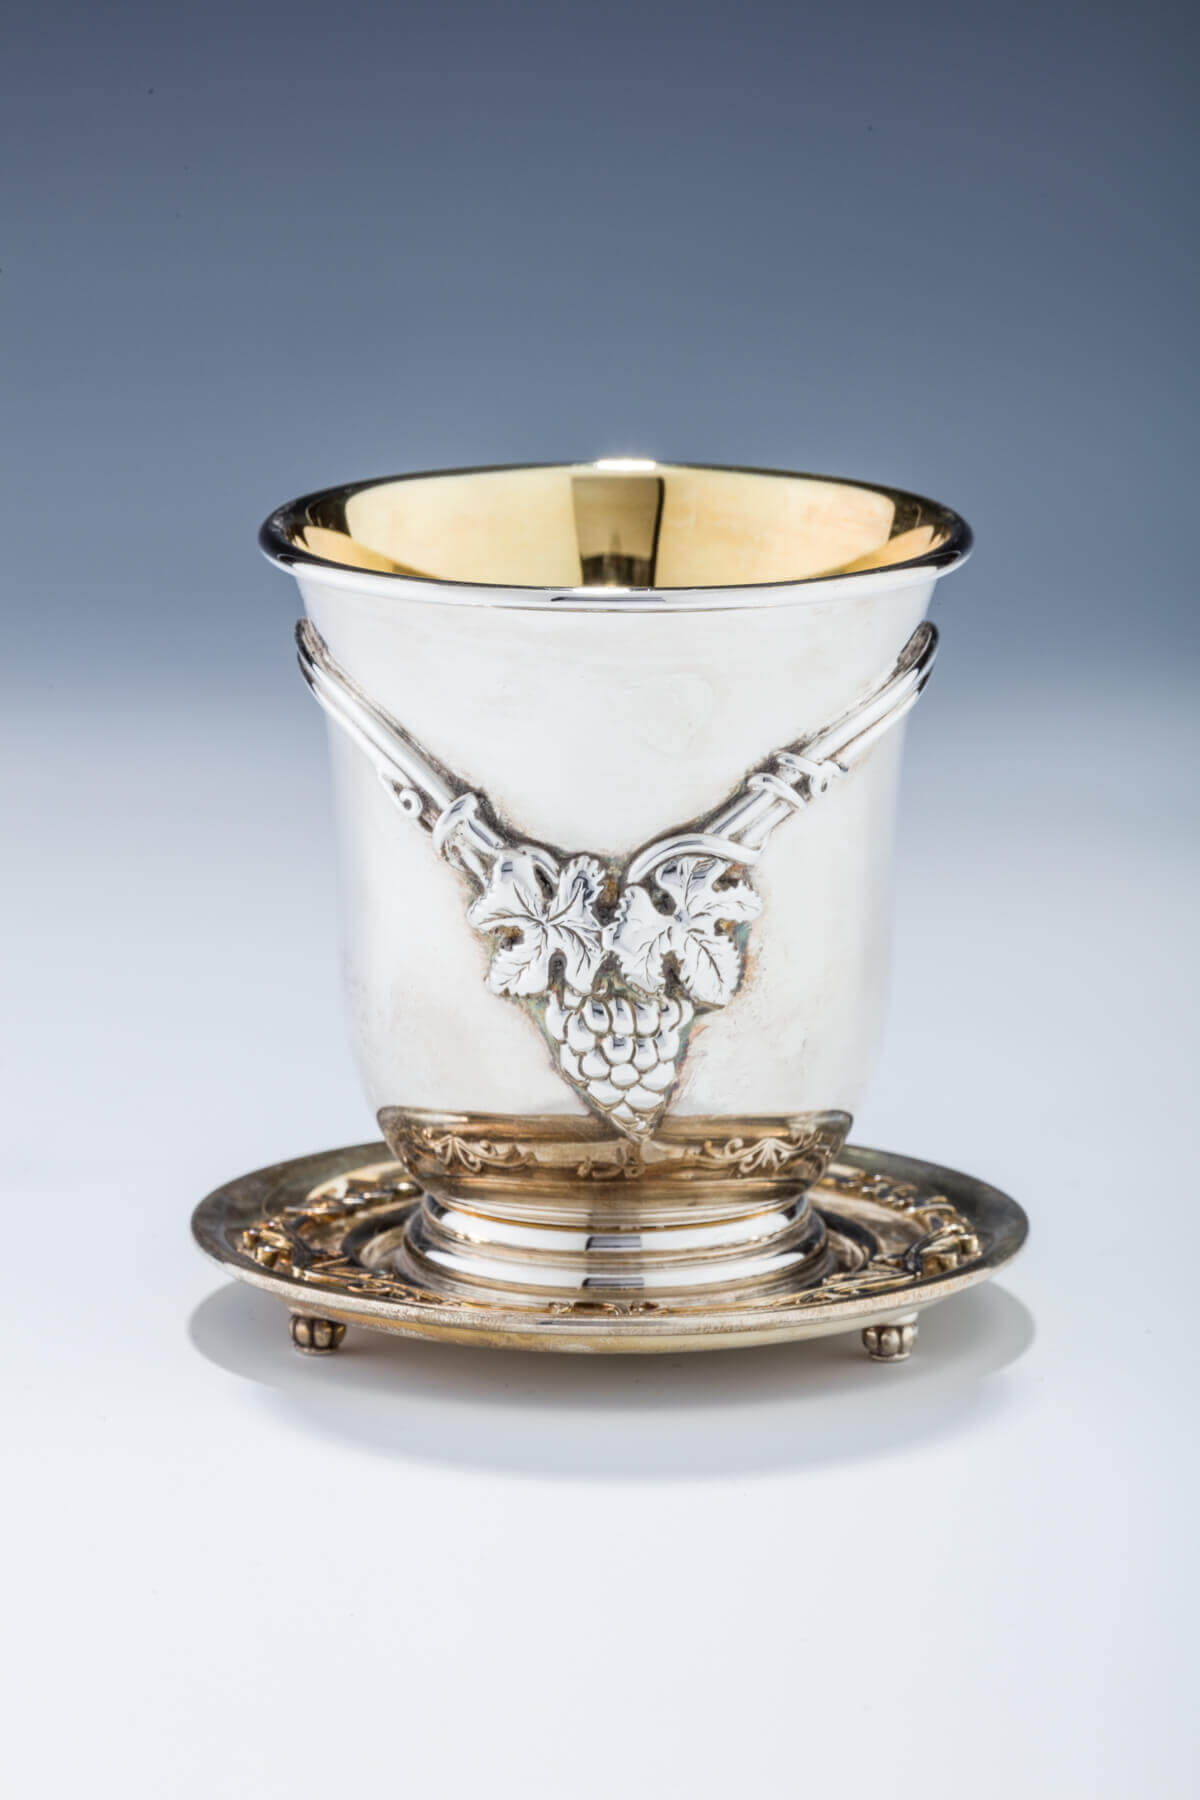 119. A STERLING SILVER KIDDUSH CUP BY SWED WITH UNDERPLATE